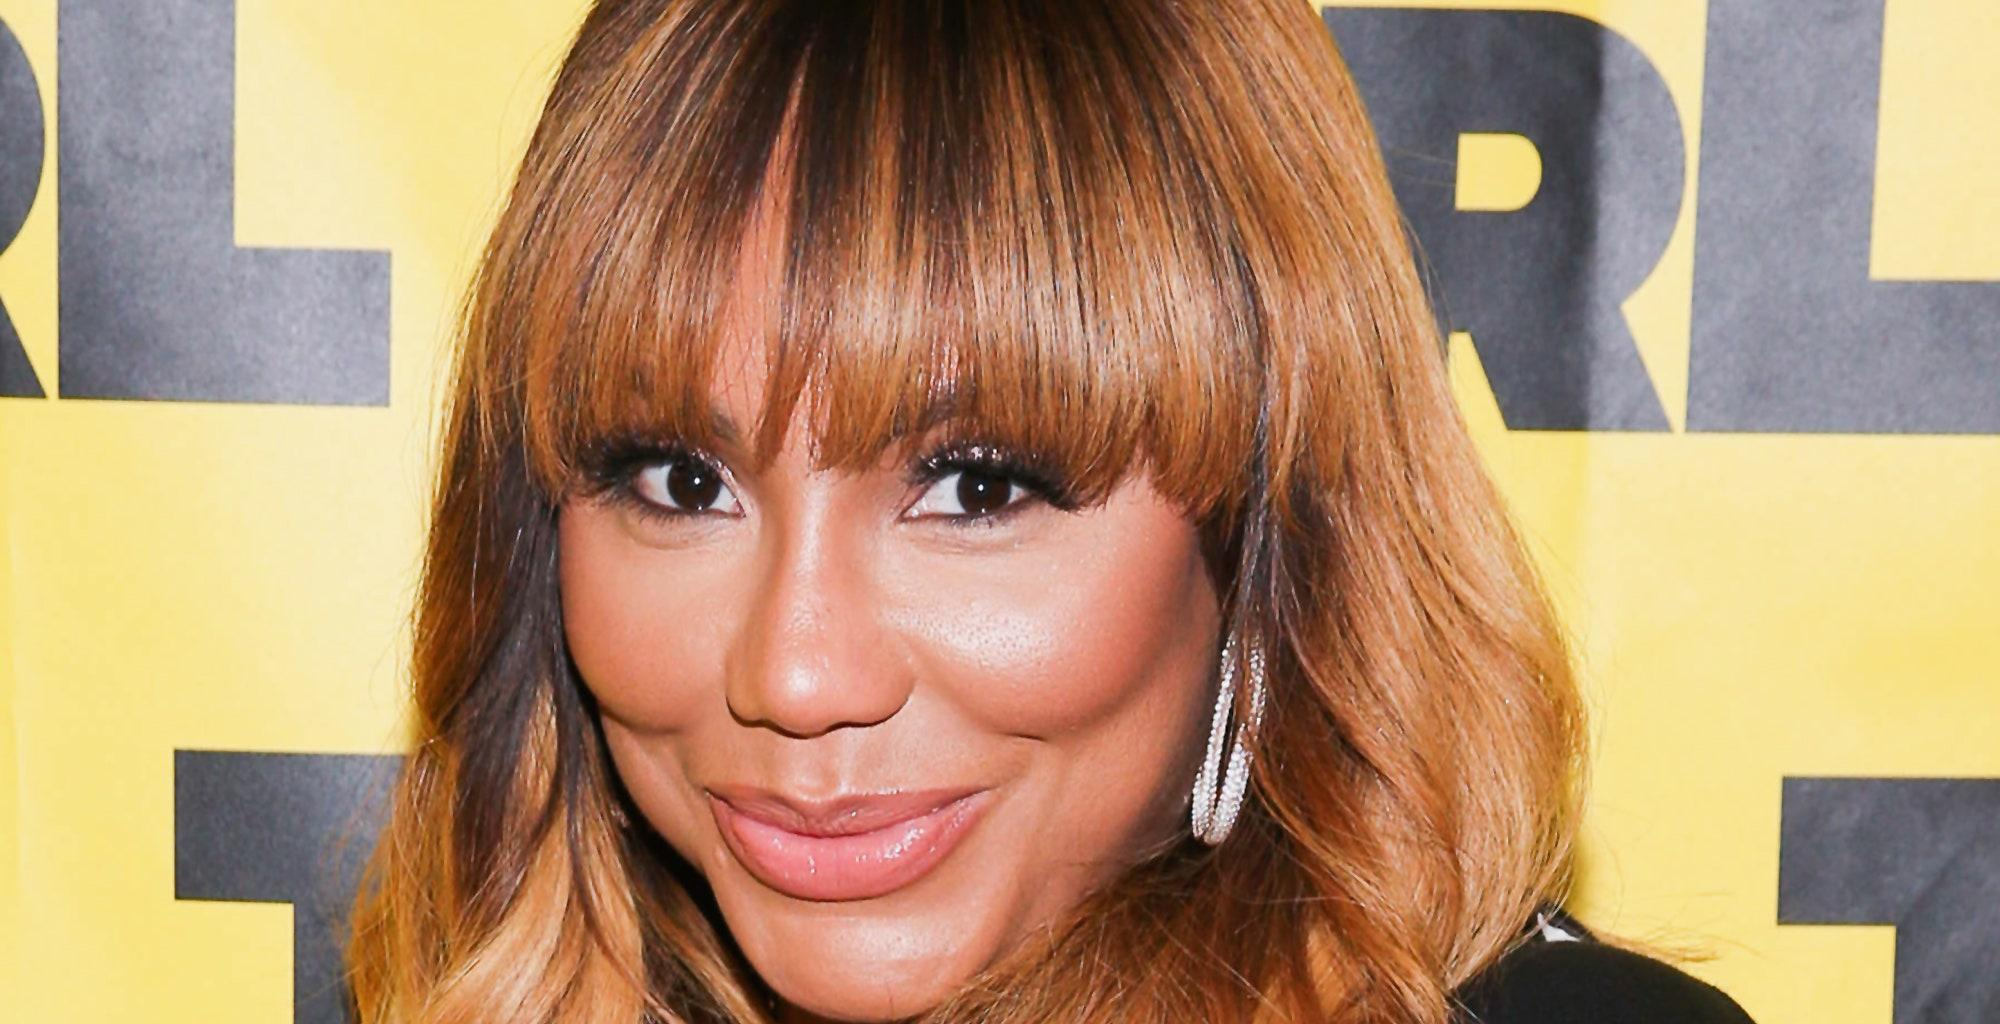 Tamar Braxton Wants To Support Your Business - Here's What You Need To Know!